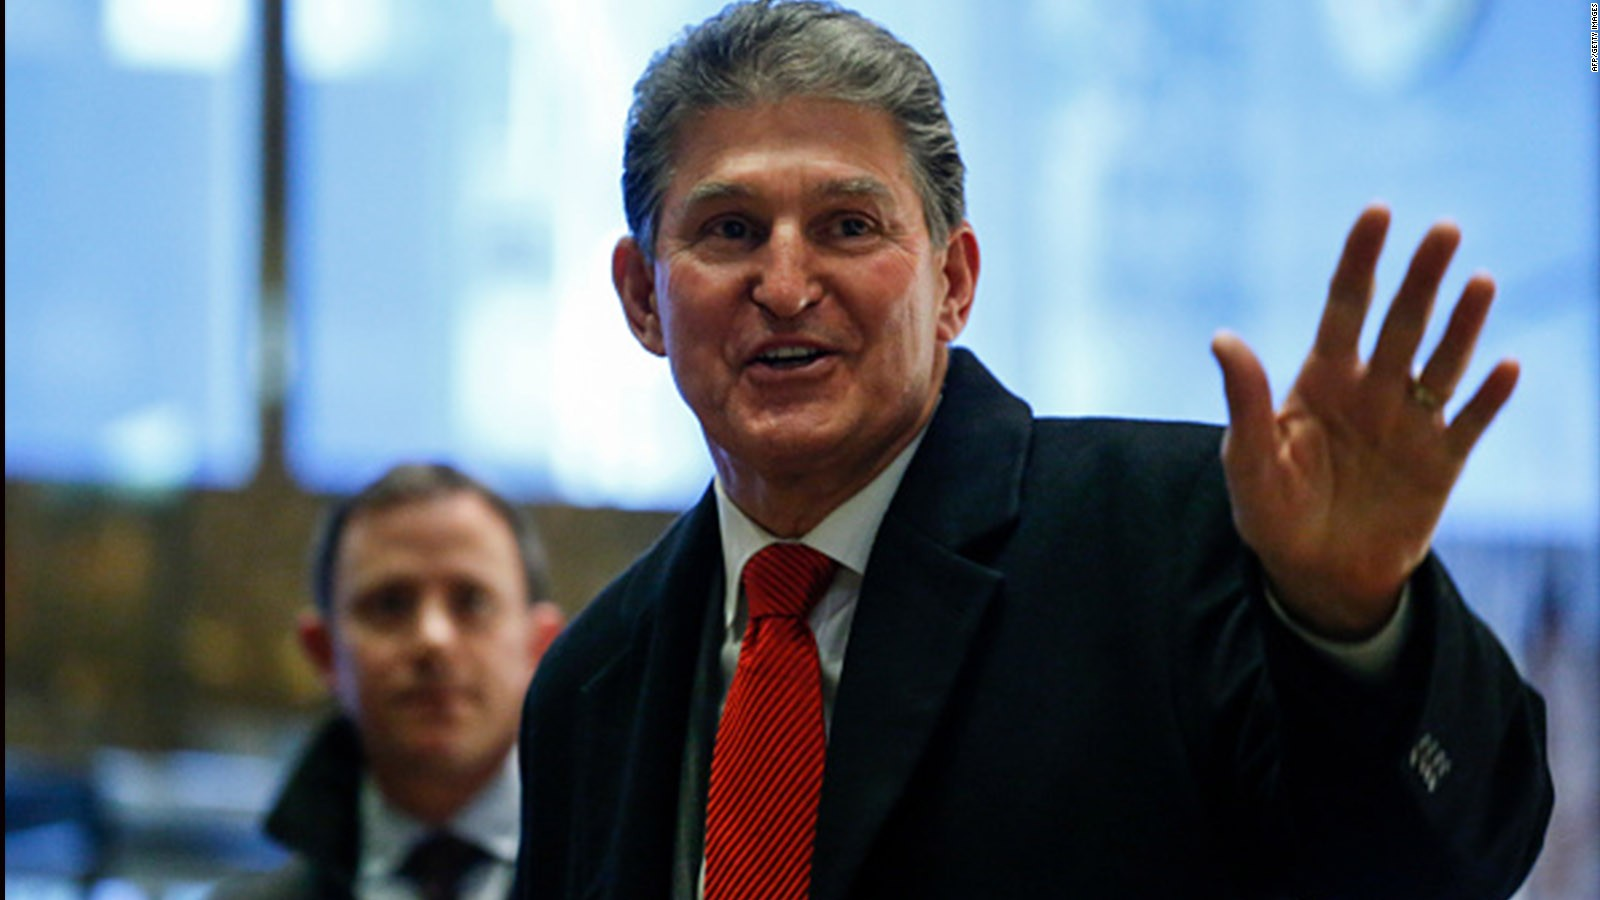 Manchin: Trump should make his clothes in WV